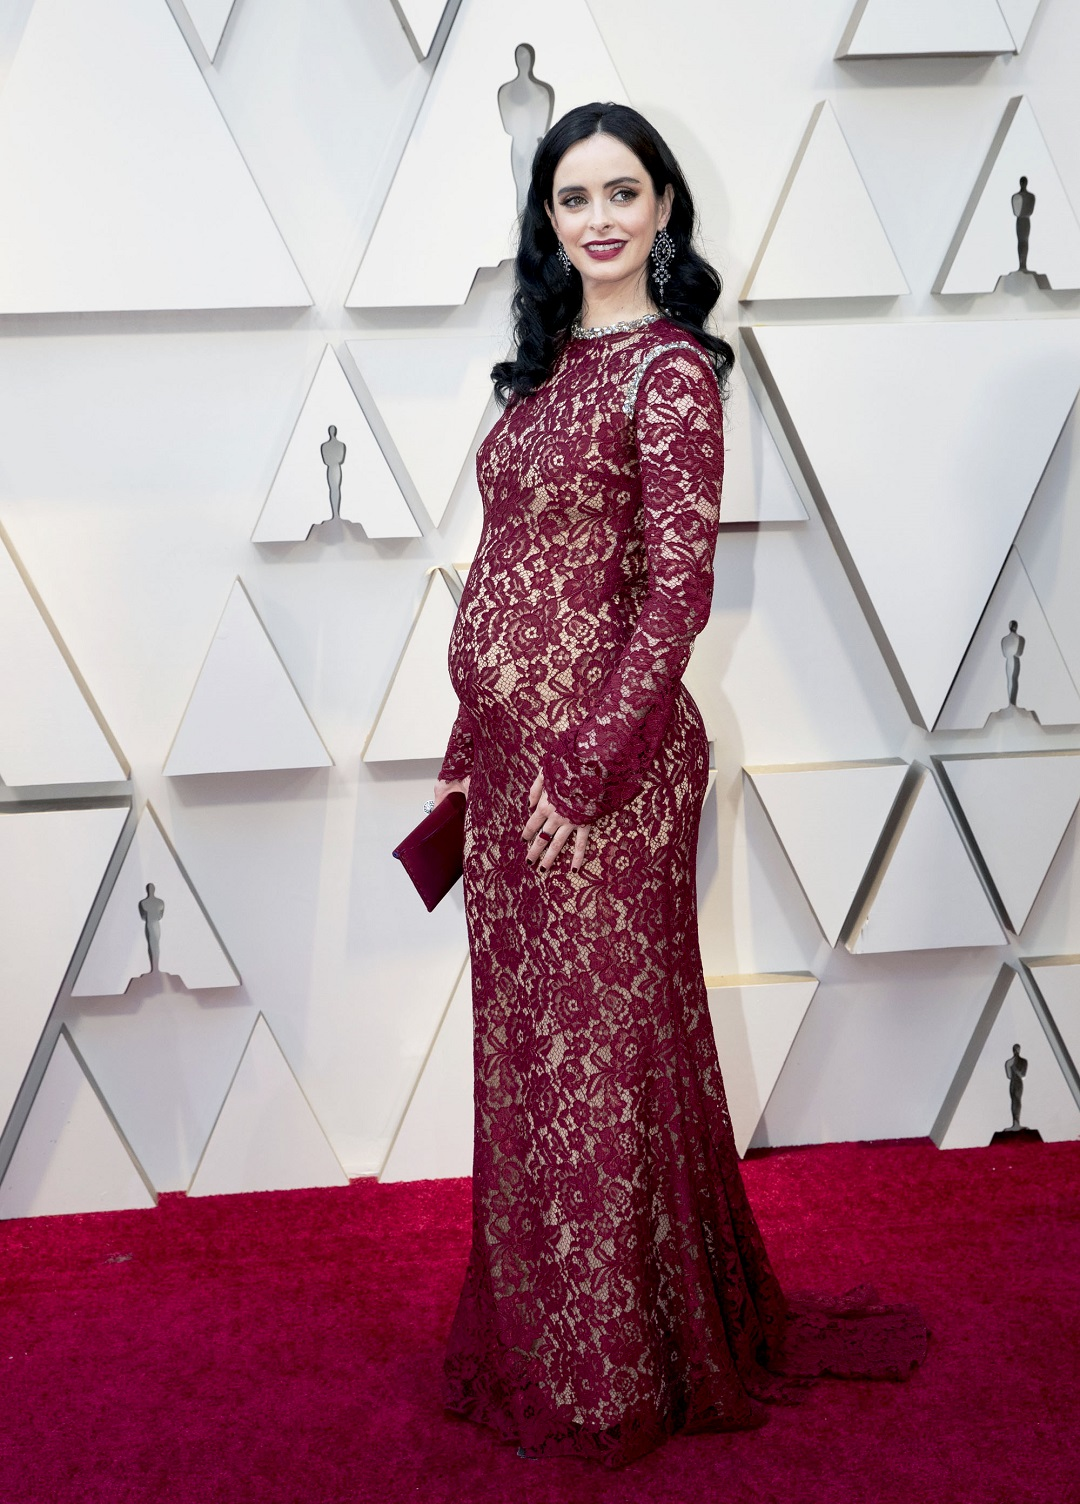 Krysten Ritter Pregnant Red Lace Gown Oscars 2019